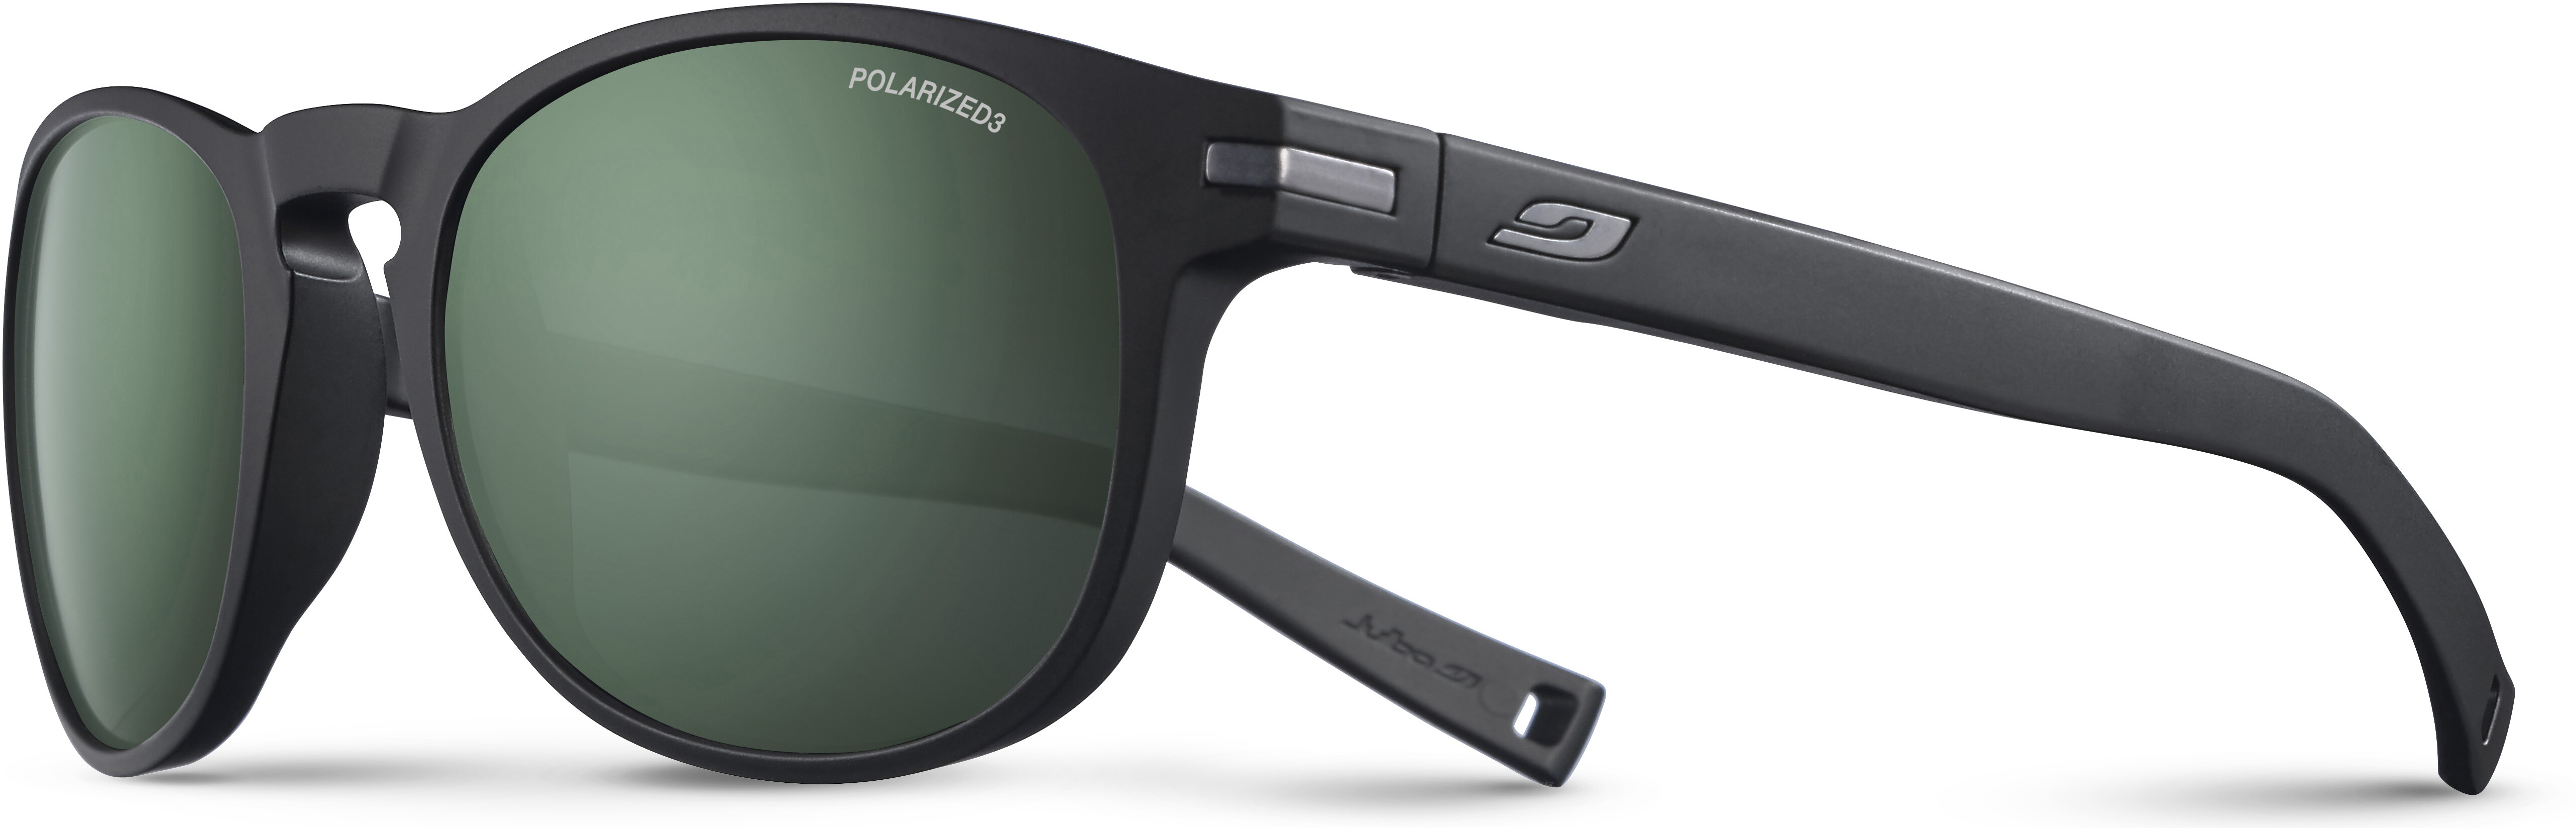 7389ad82c6 Julbo Valparaiso Polarized 3 Glasses Men black at Addnature.co.uk